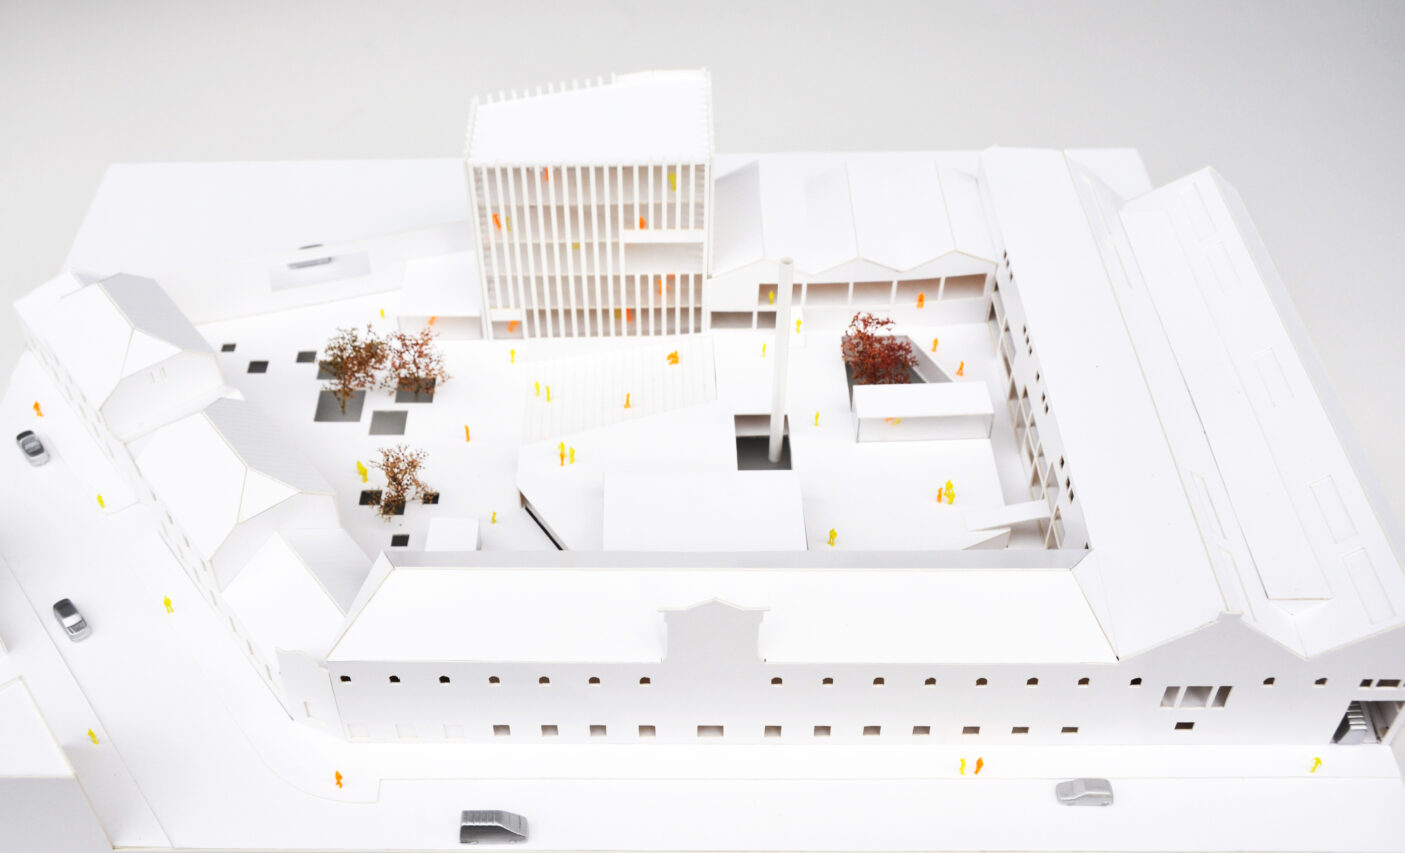 0913-maquette-5-2-scaled.jpg